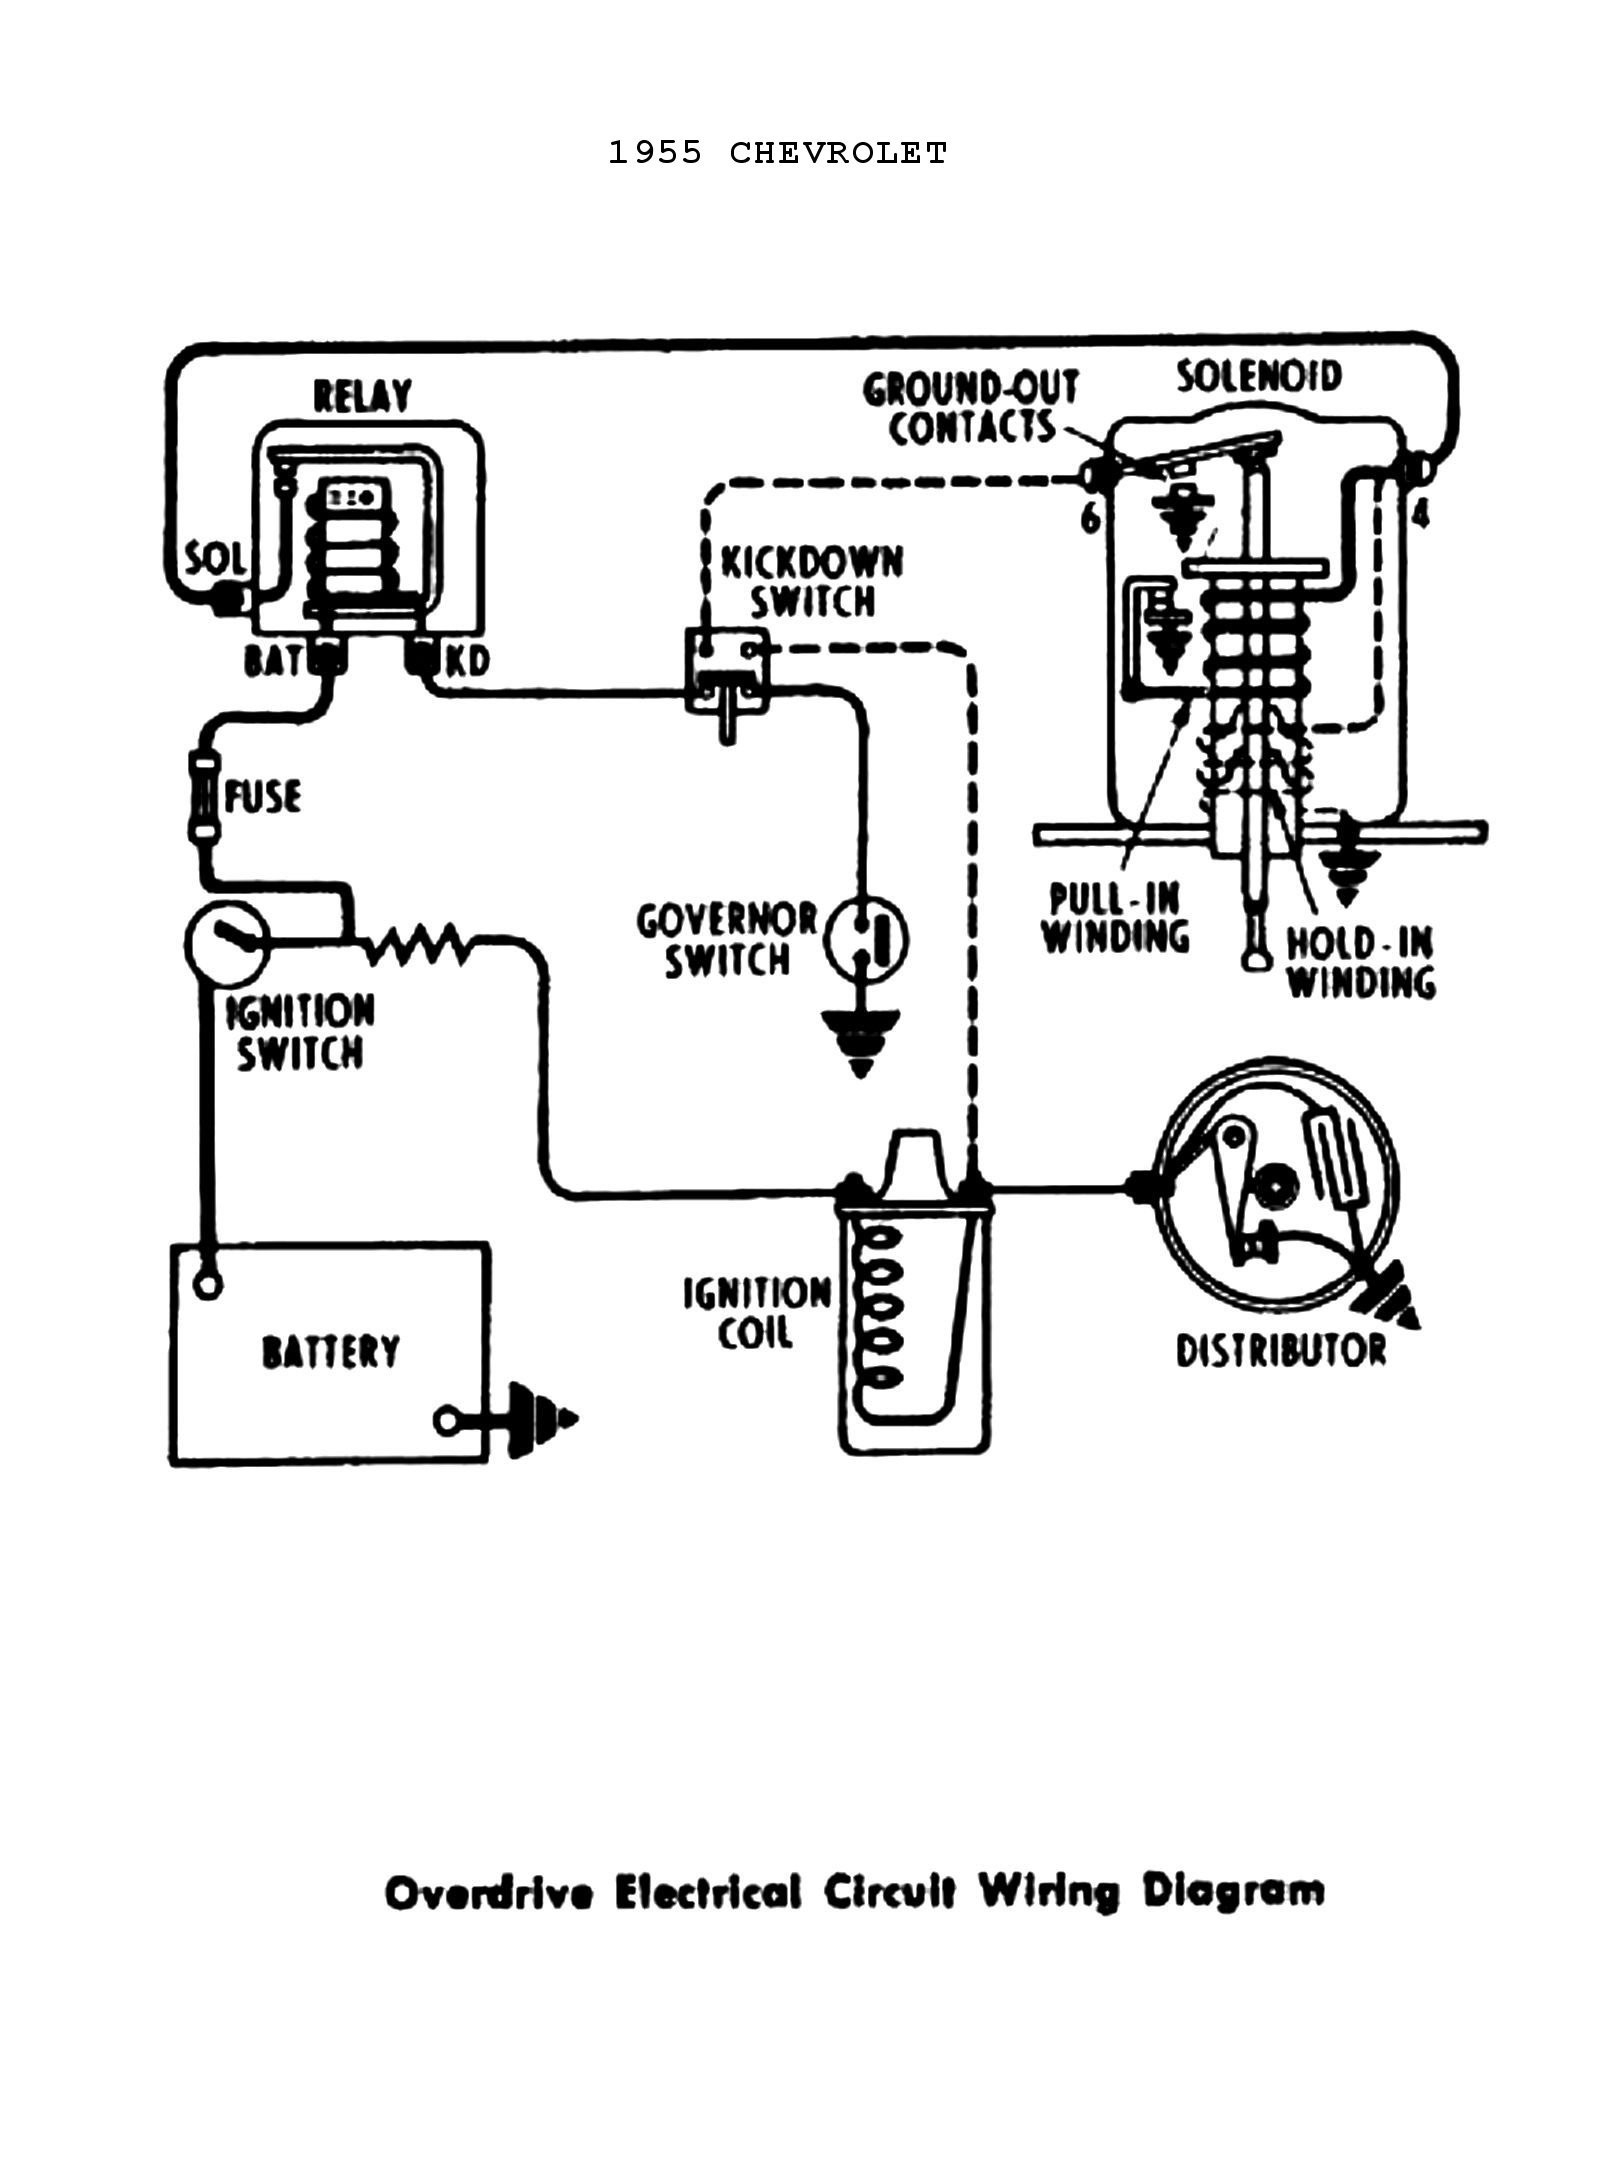 hight resolution of gm alternator wiring schematic wiring diagram for gm light switch best wiring diagram for alternator